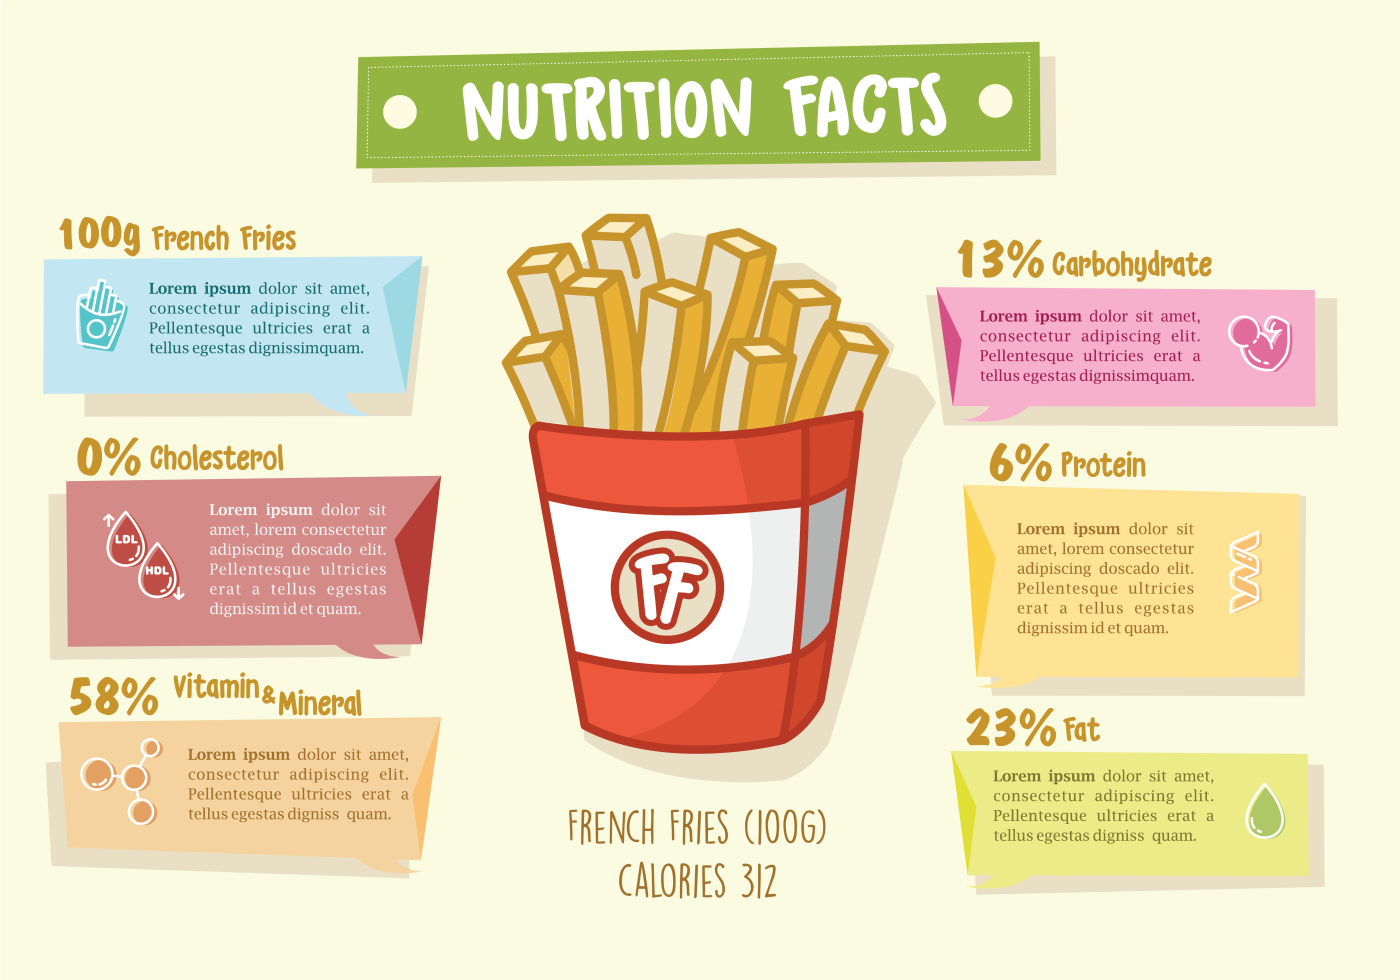 french fries nutrition facts - download free vector art, stock